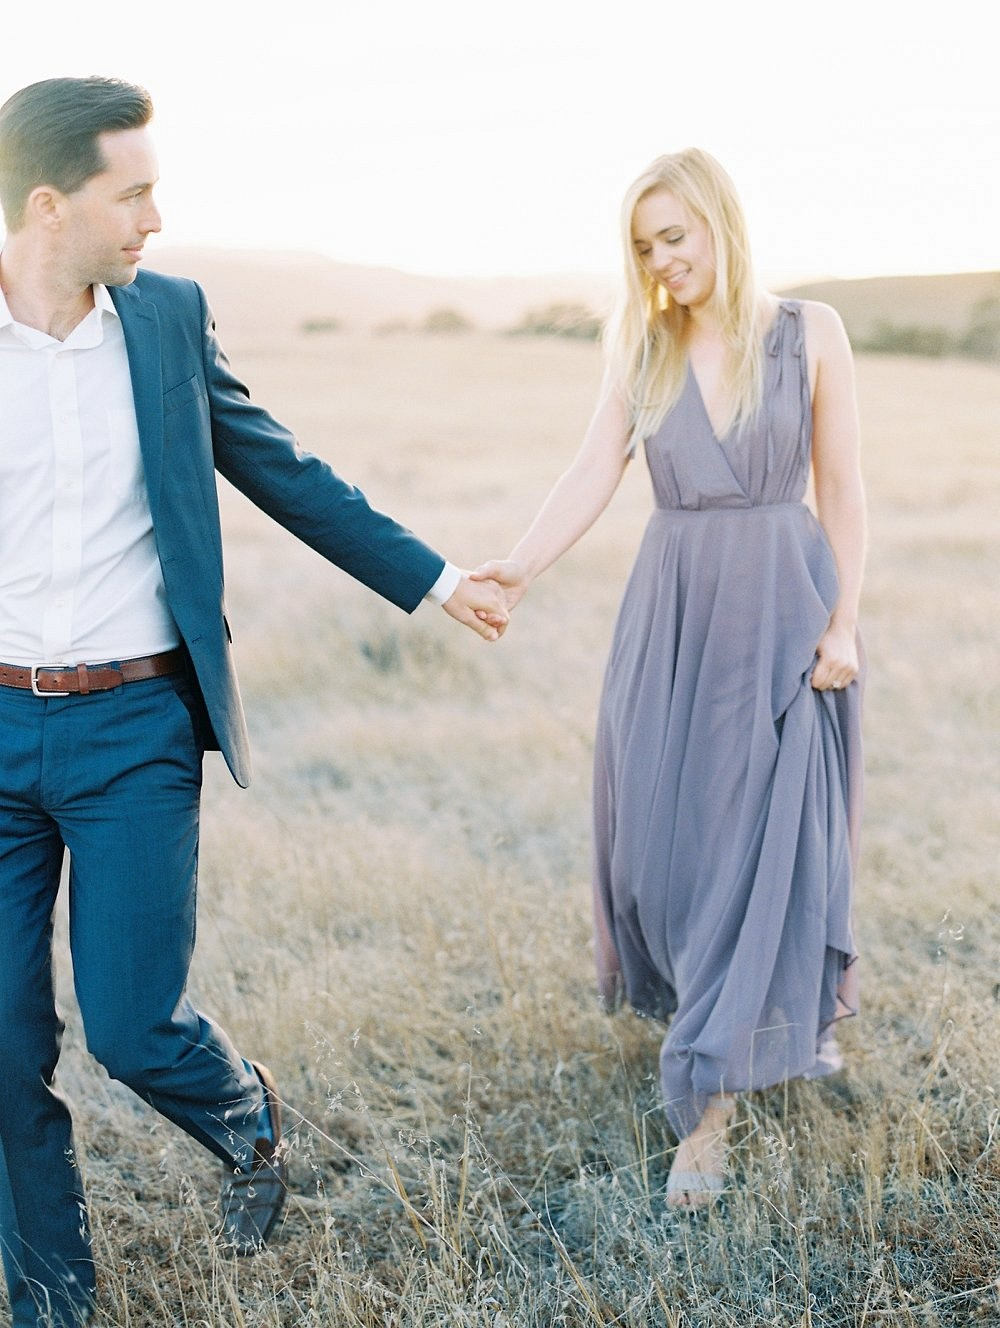 Sunset Engagement Session at Kestrel Park